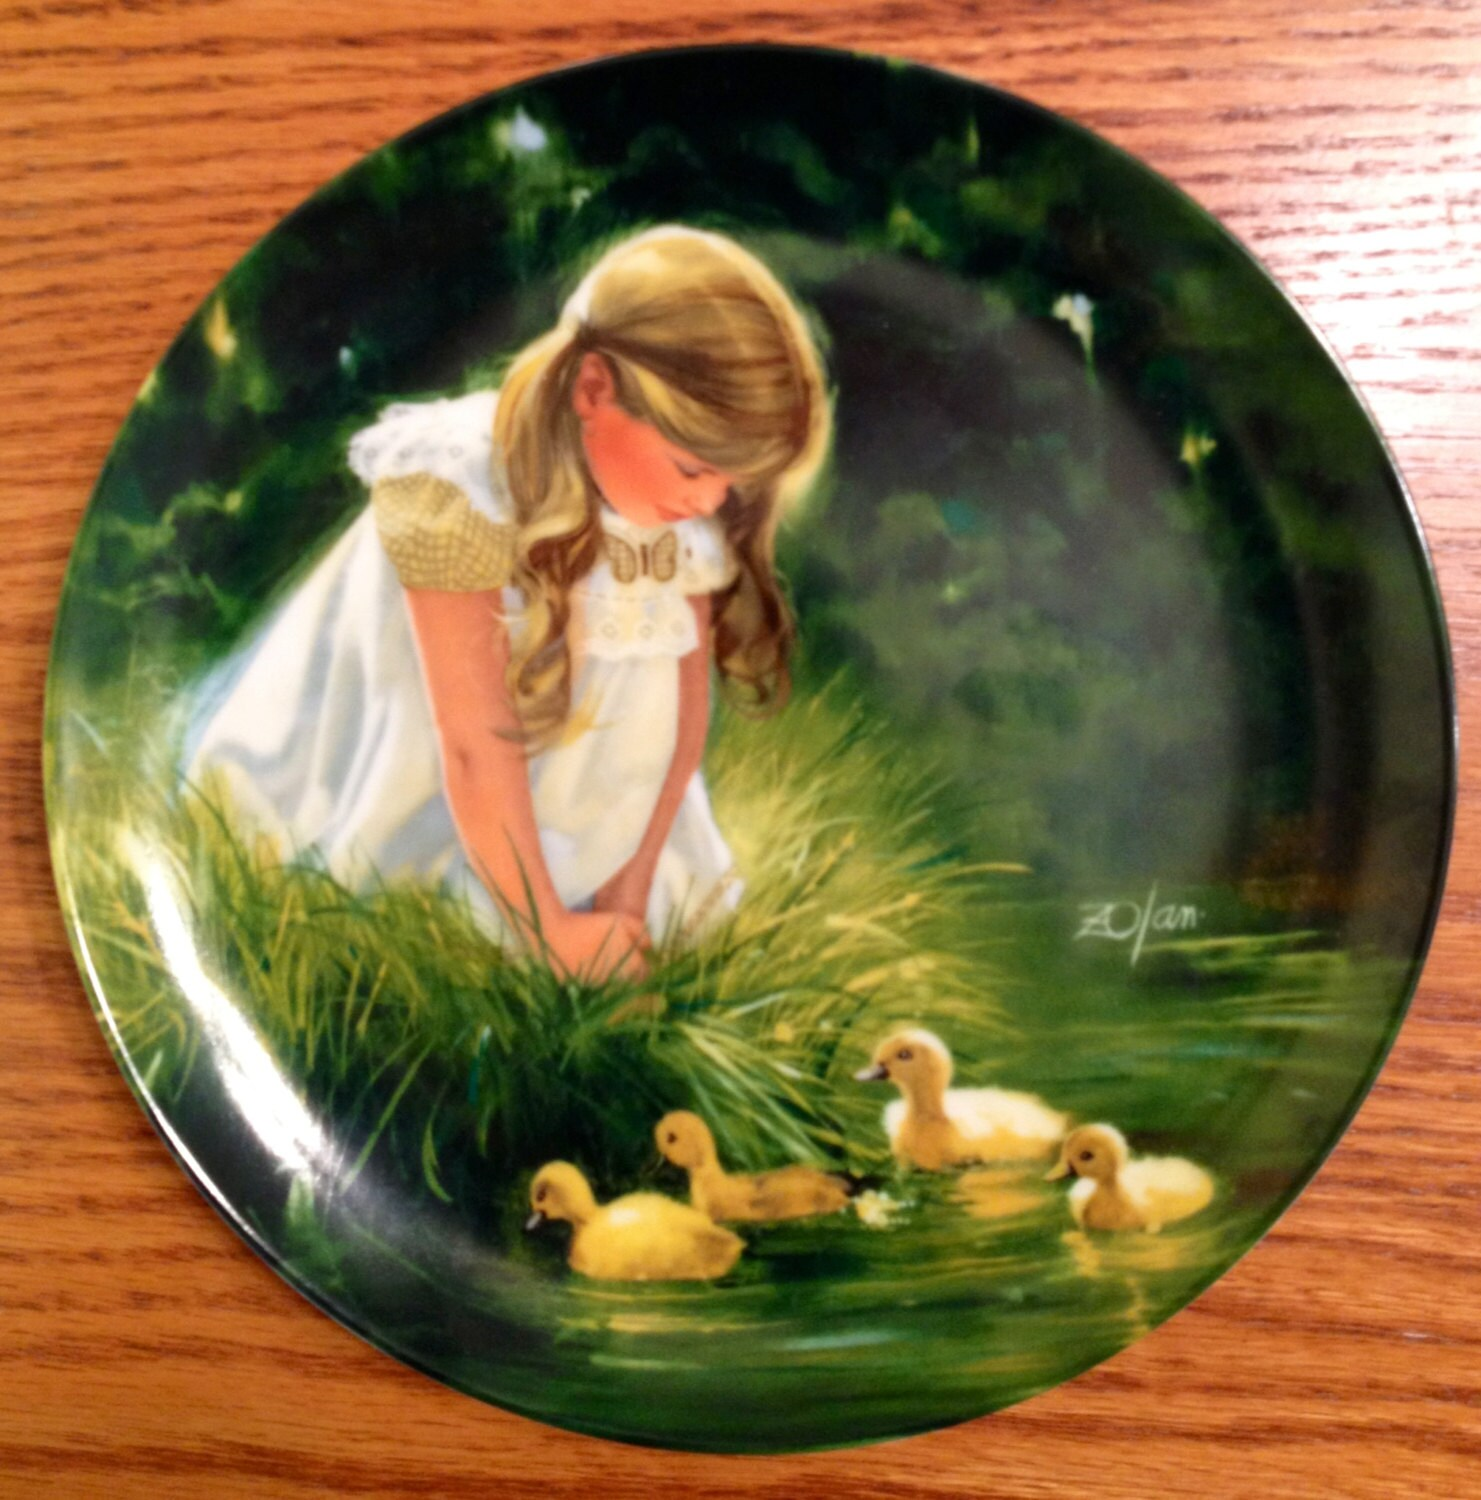 1984 Quotes With Page Numbers: Golden Moment Porcelain Collector Plate By Donald Zolan 1984